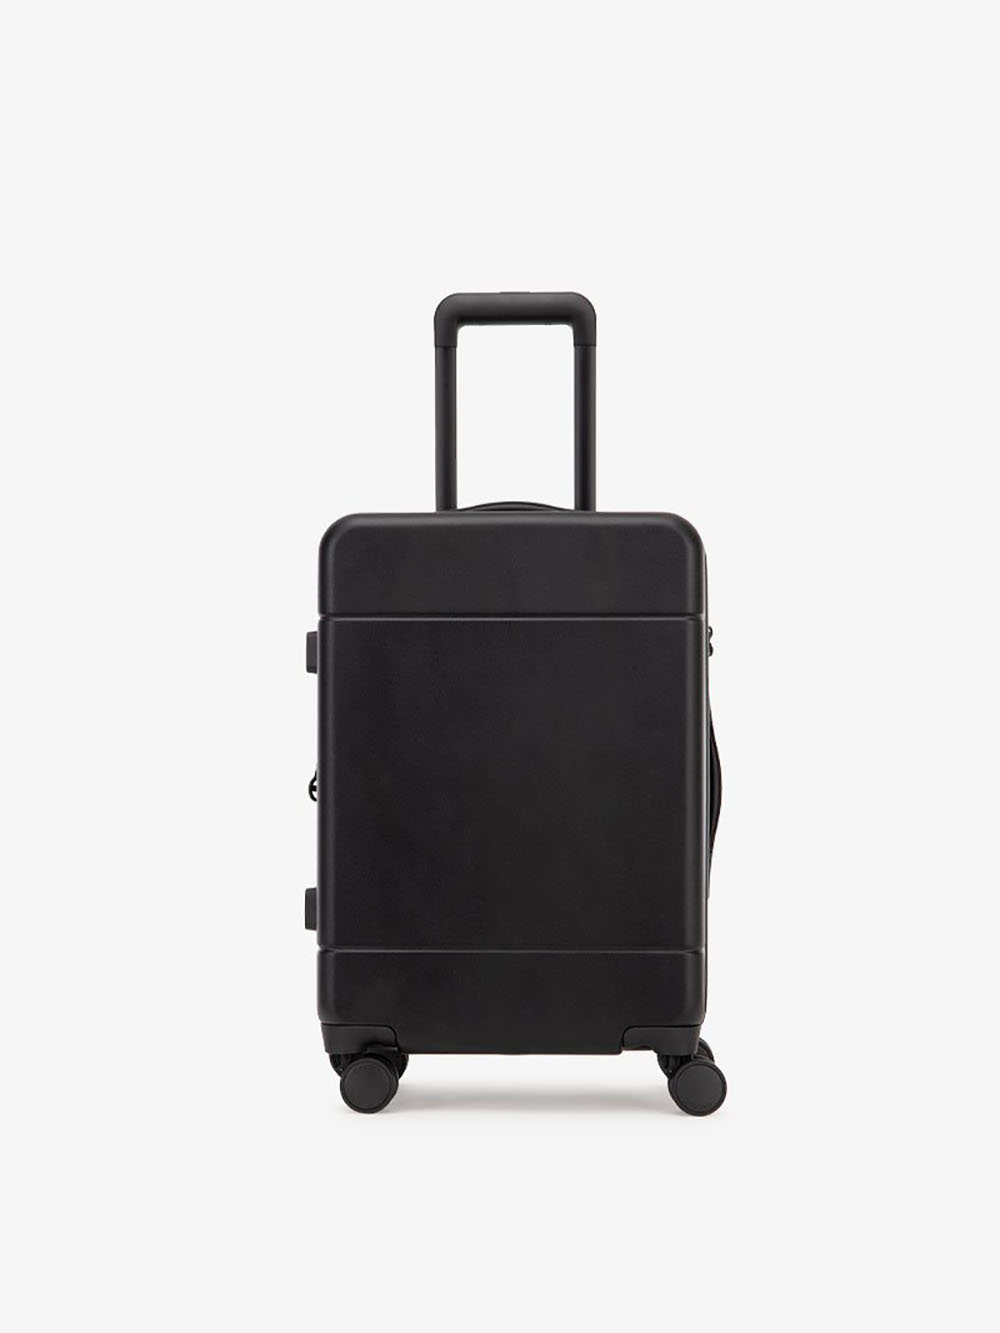 Calpak Hue Carry-On Luggage